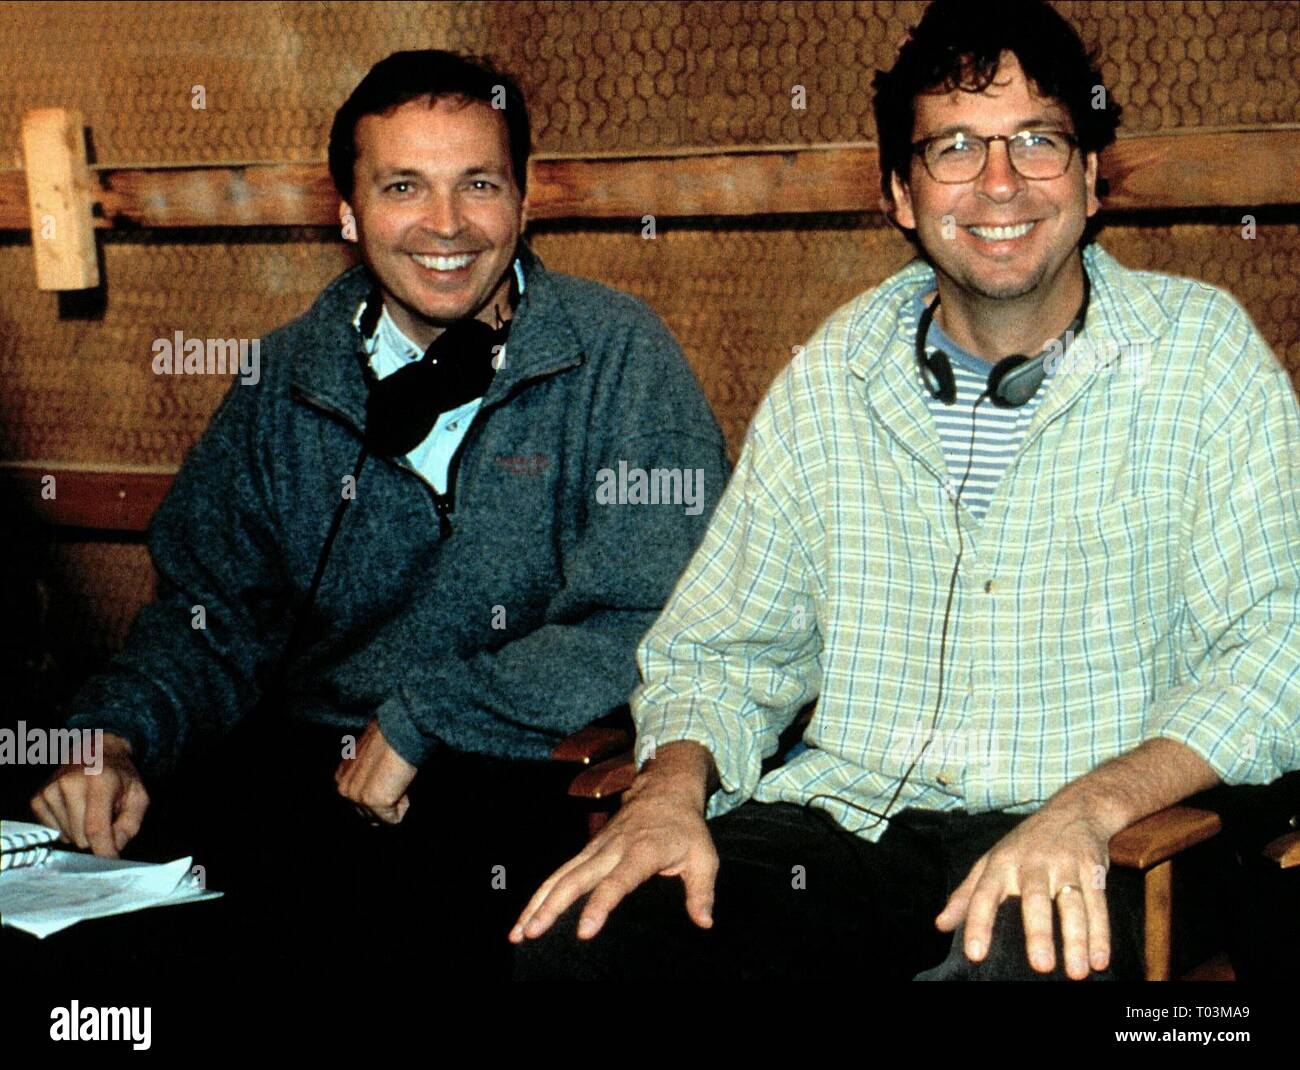 BOBBY FARRELLY, PETER FARRELLY, THERE'S SOMETHING ABOUT MARY, 1998 - Stock Image